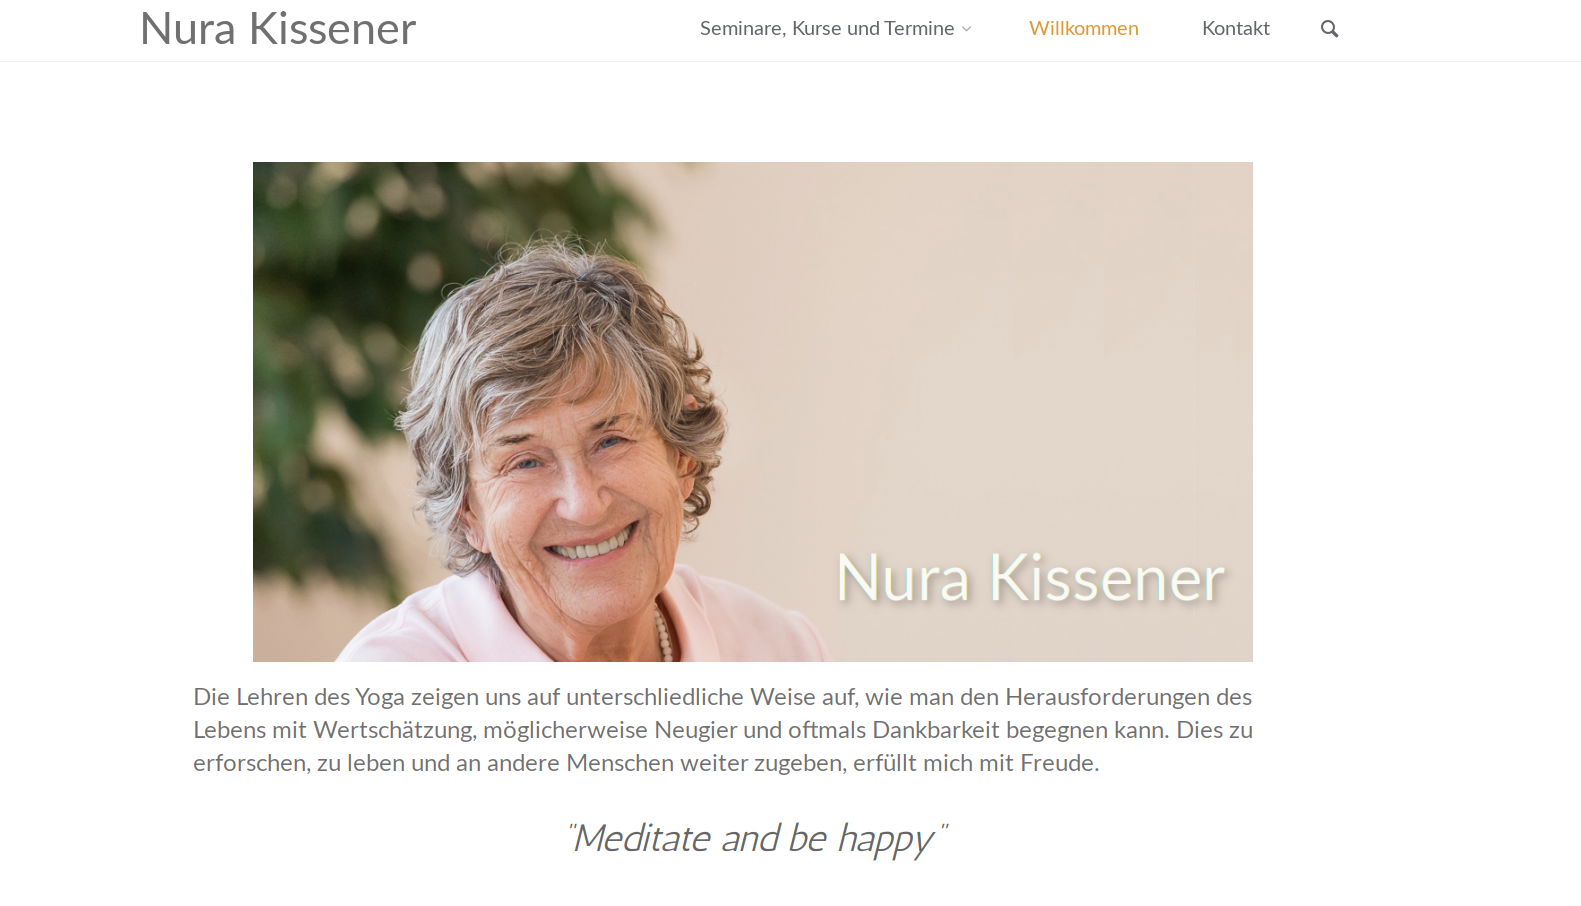 https://nura-kissener.at/